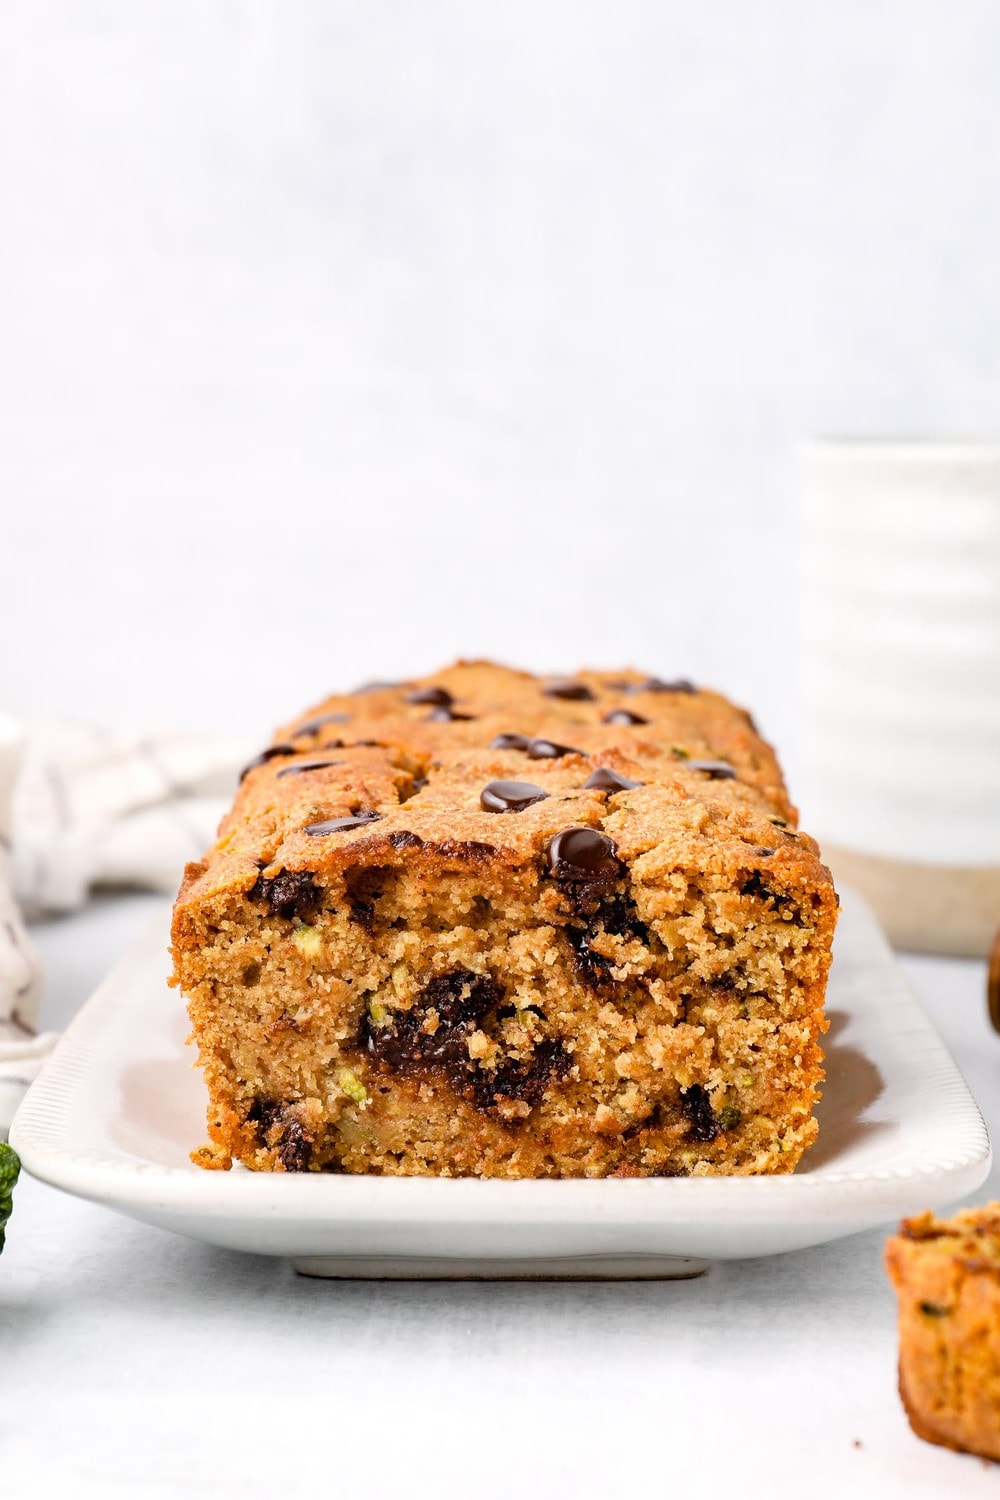 Gluten Free Zucchini Bread with chocolate chips.